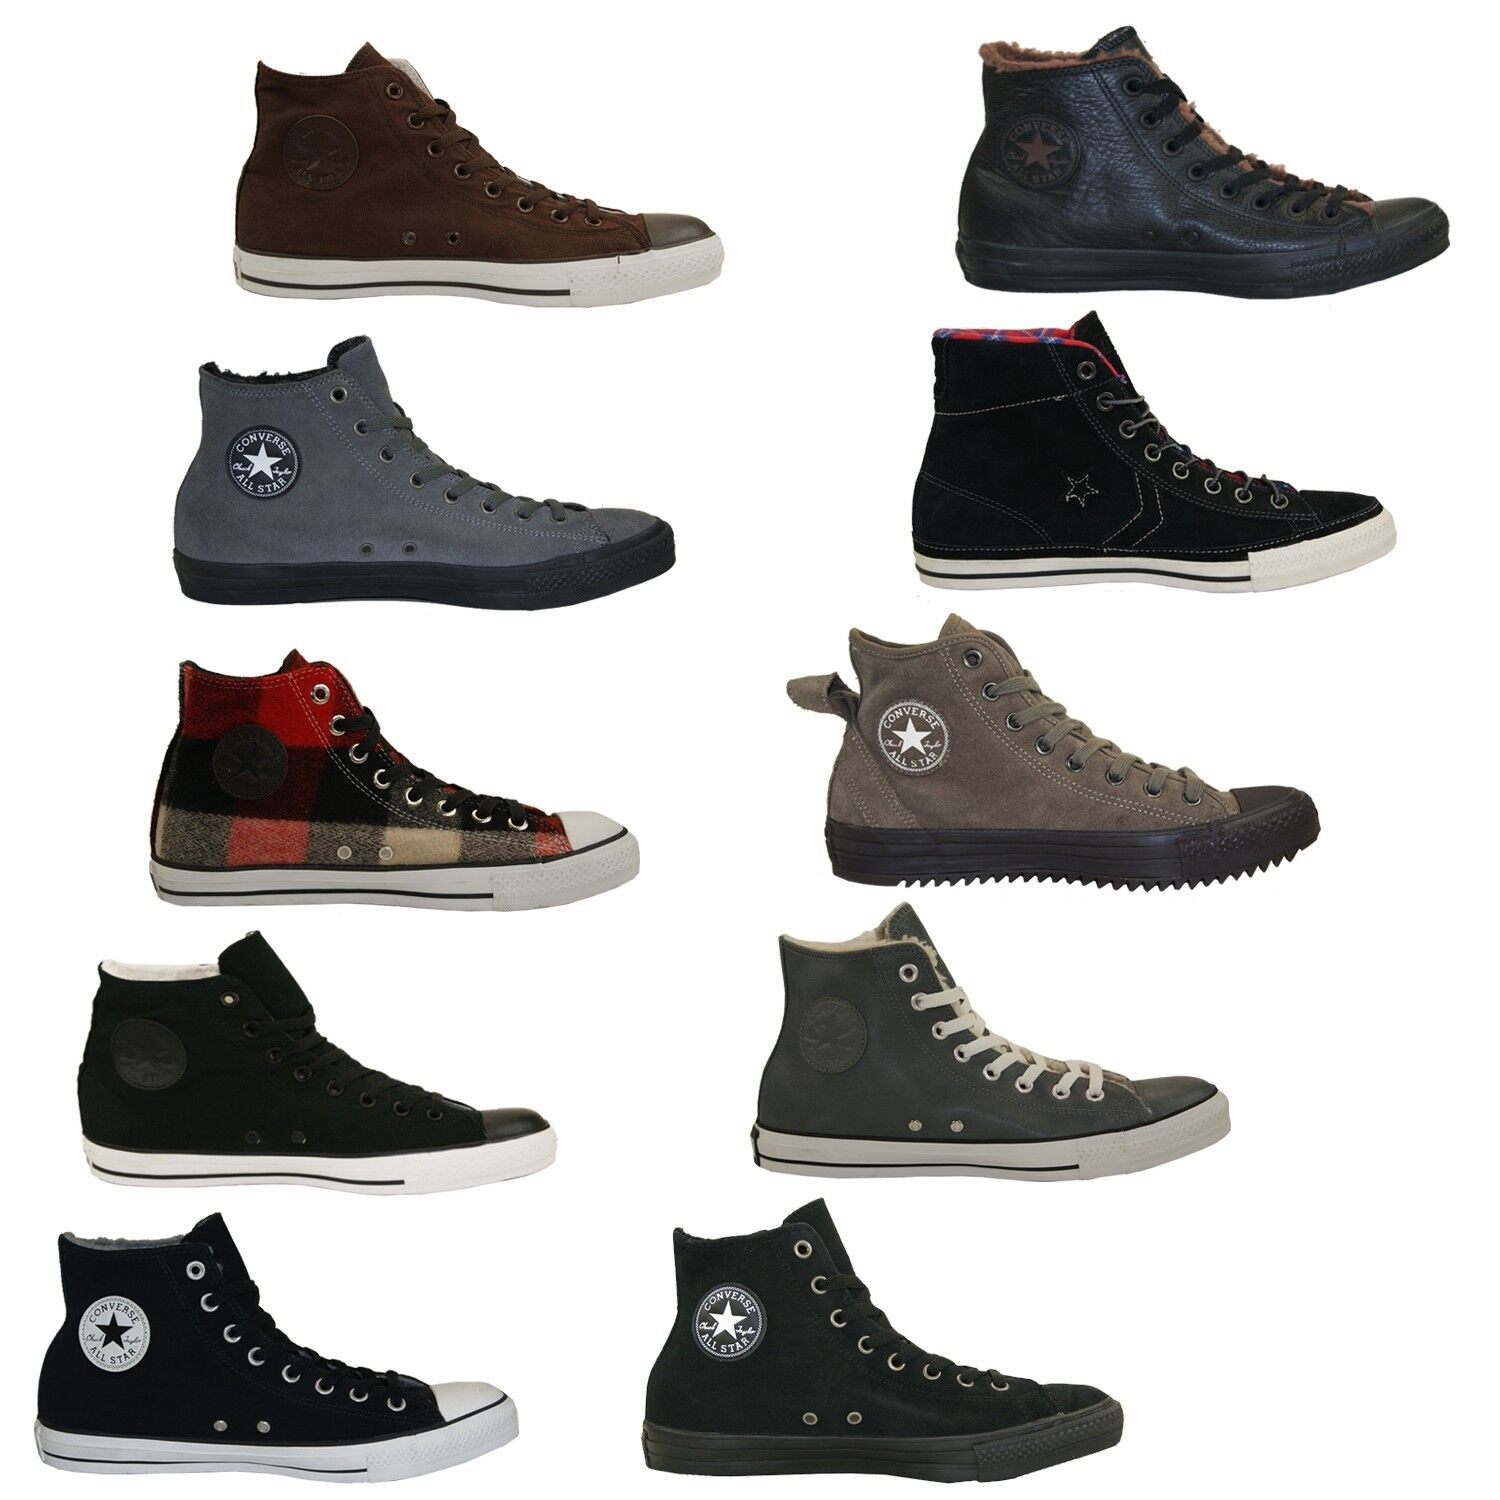 Converse All Stars paniers Converse Bottes Homme Femme Hiver Chaussures Neuf